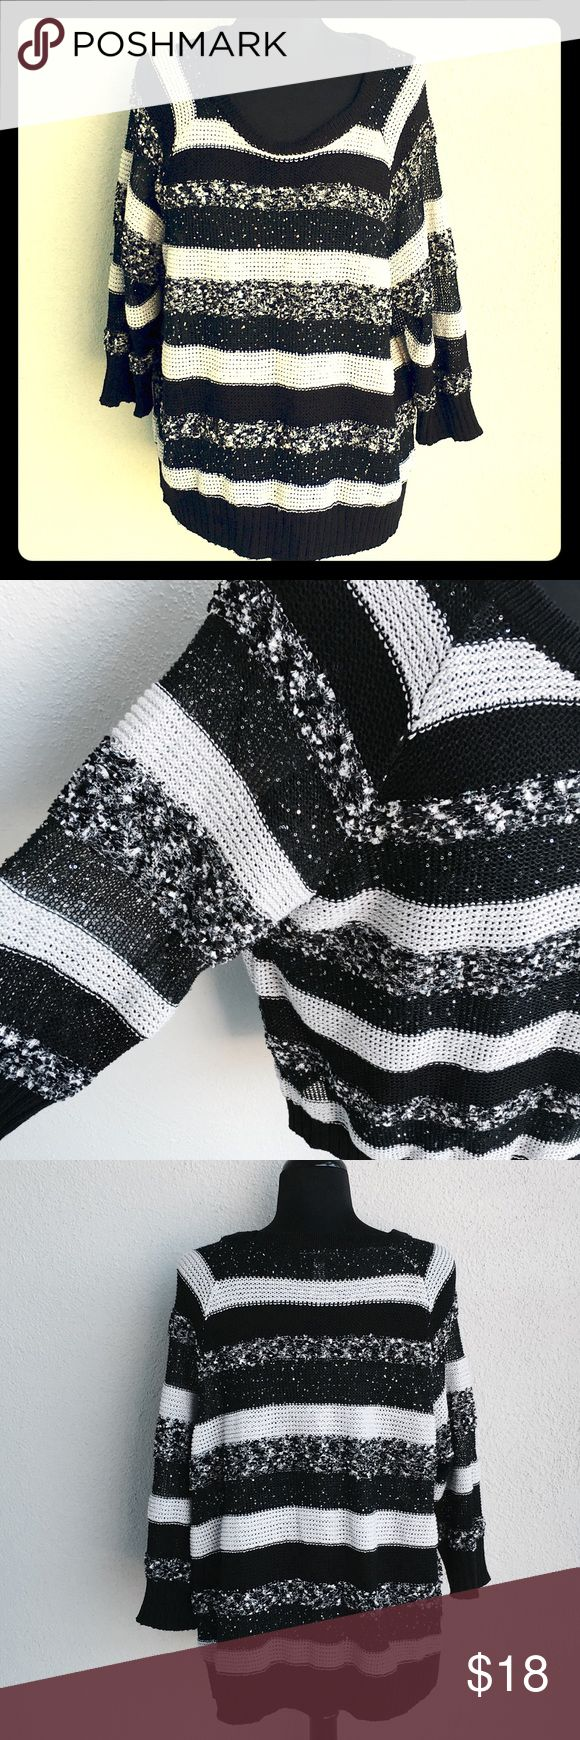 INC Knitted Black Gray Sparkle Blouse Size 3X International Concept INC Blouse Size 3X. Black Gray Sparkle stripes. Material: 48% Polyester, 20% Acrylic, 16% Nylon, 15% Cotton, 1% Other Fiber.        Measurement taken lay flat; Underarm to underarm 25 inches, Length 24 inches. INC International Concepts Tops Blouses